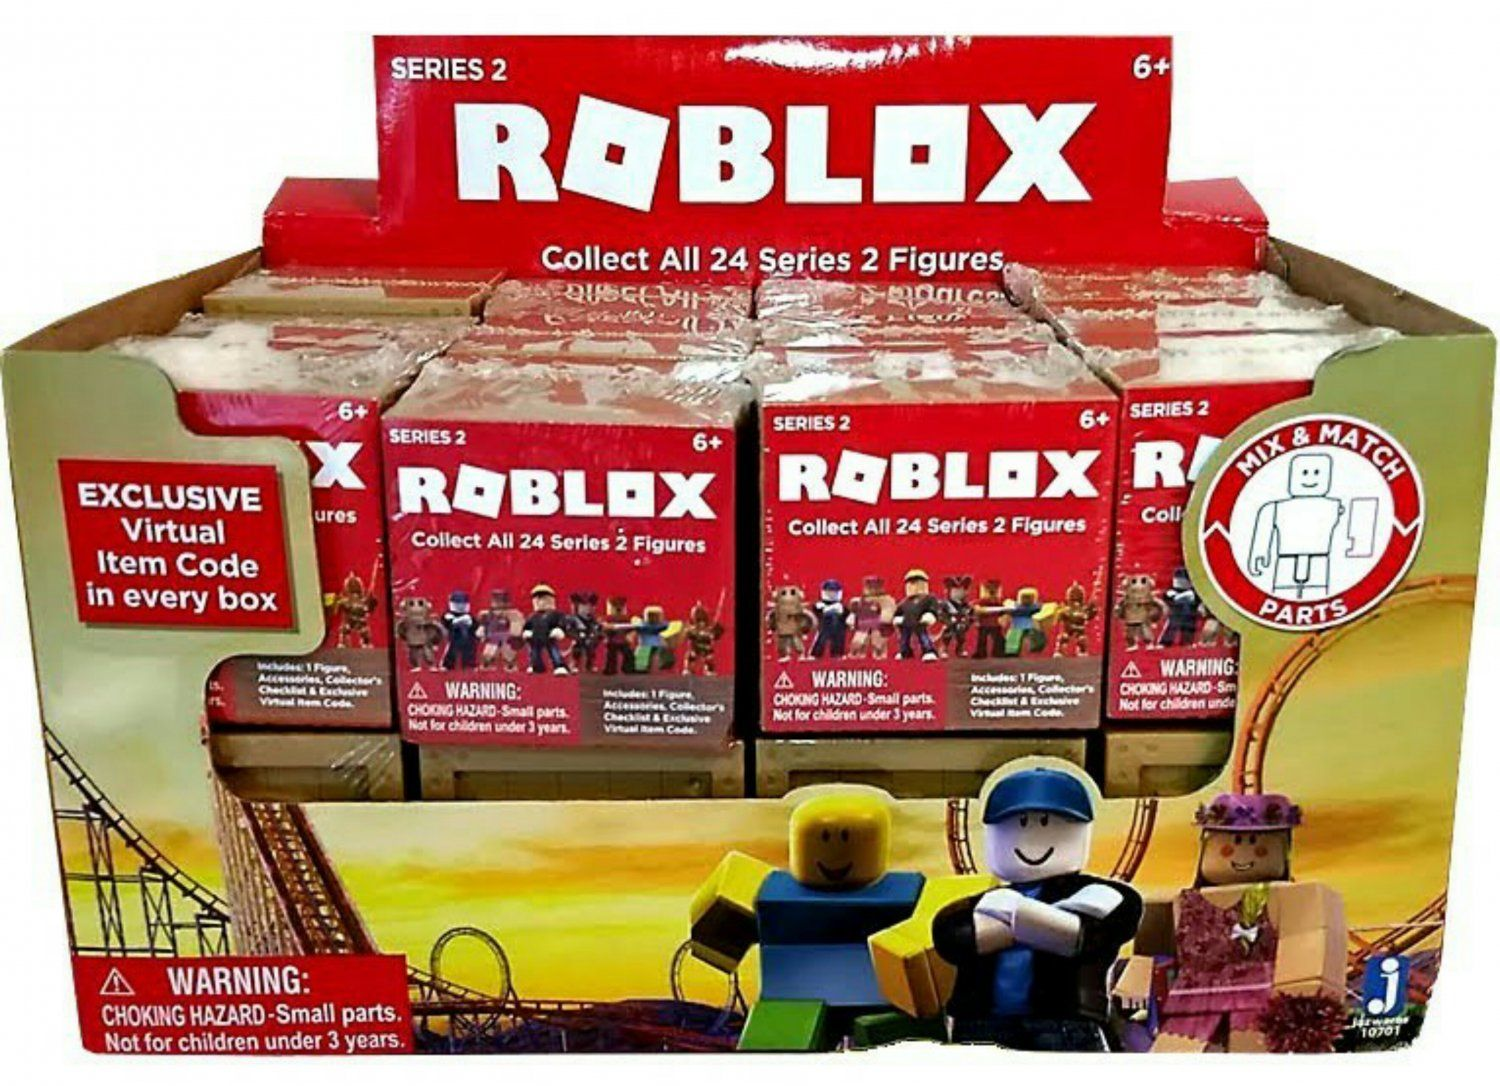 Roblox Toolbox Toy Roblox Mystery Action Figures Series 2 Blind Box Assortment Full Case Of 24 Sealed Cube Packs By Jazwares 10701 Onlin Roblox Best Kids Toys Action Figures